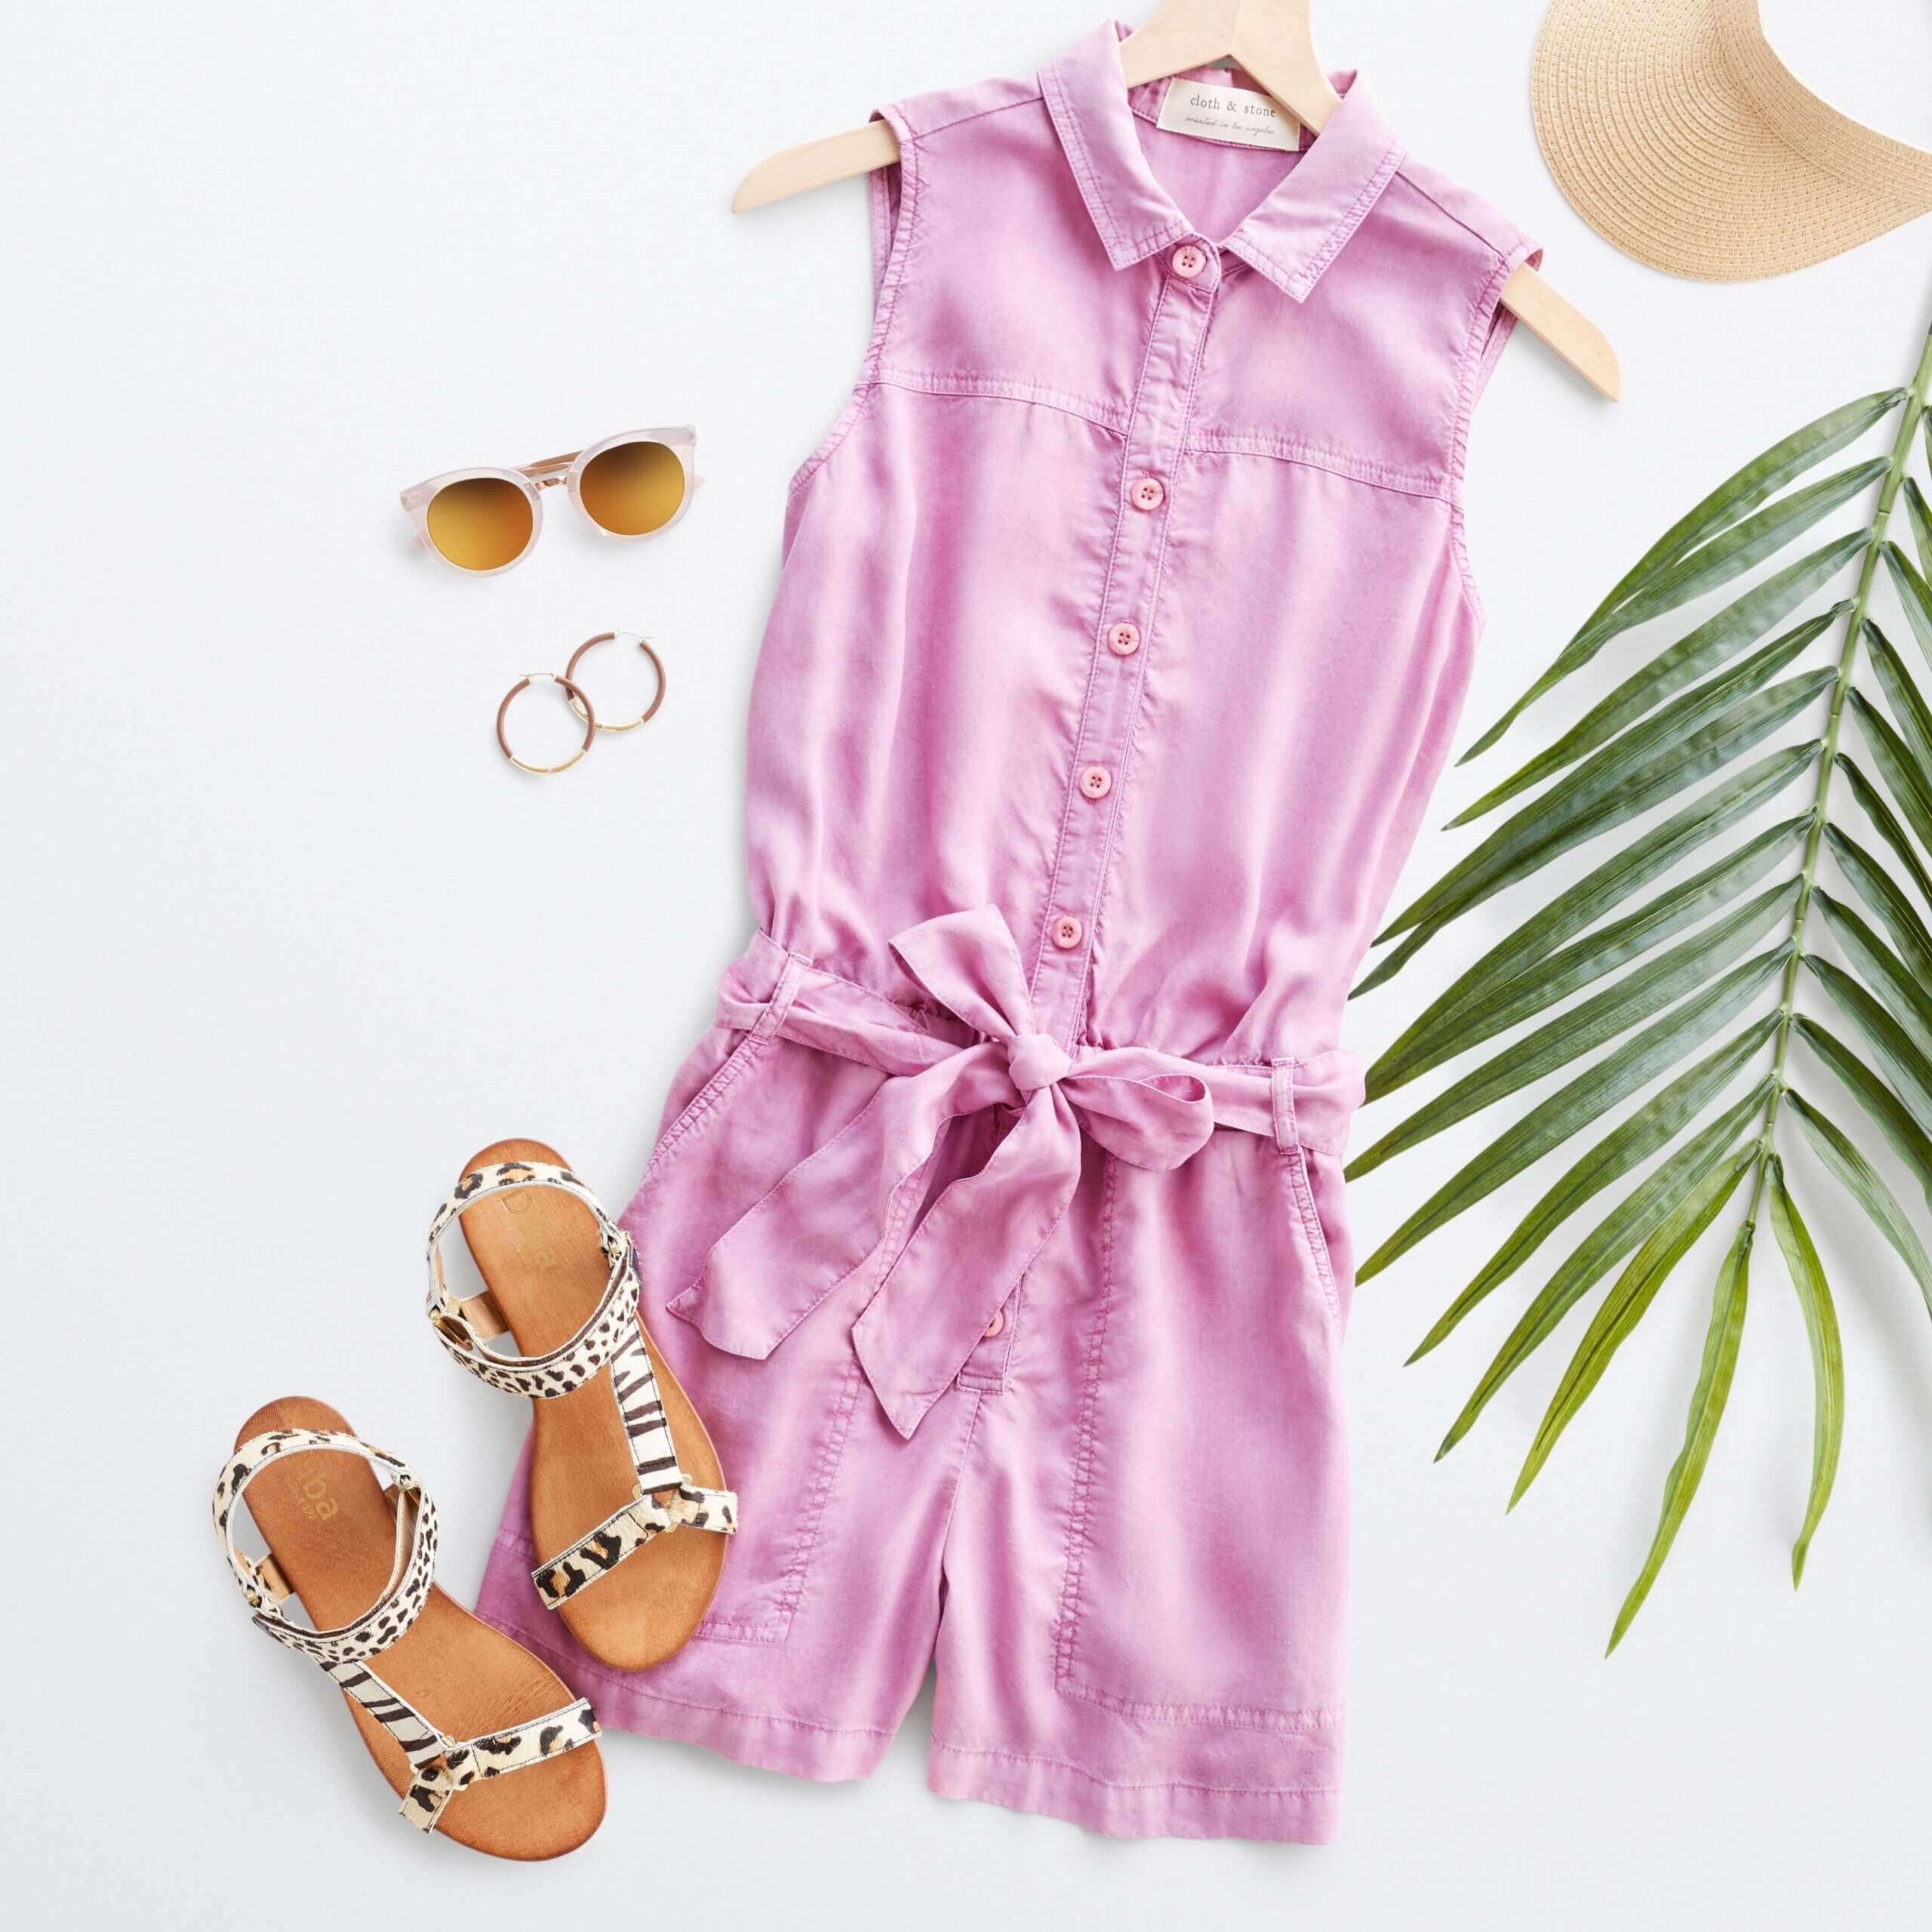 Stitch Fix women's outfit laydown featuring pink collared romper with button-front and tie-waist detail next to brown animal-print sandals and gold hoop earrings.